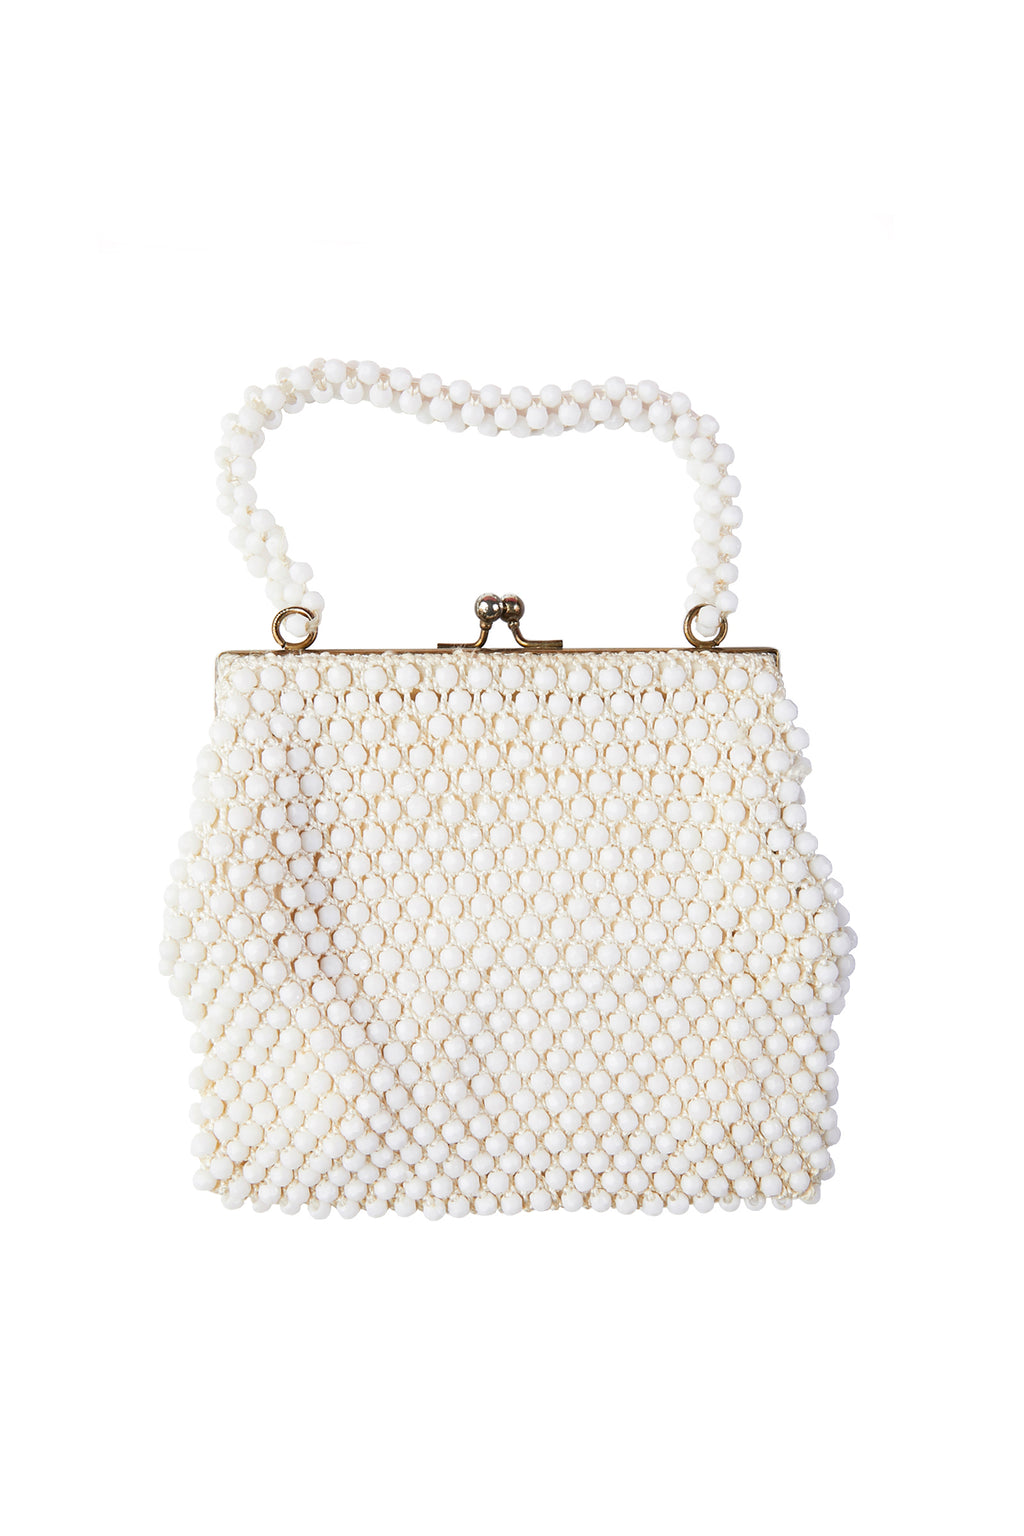 White Beaded Hangbag